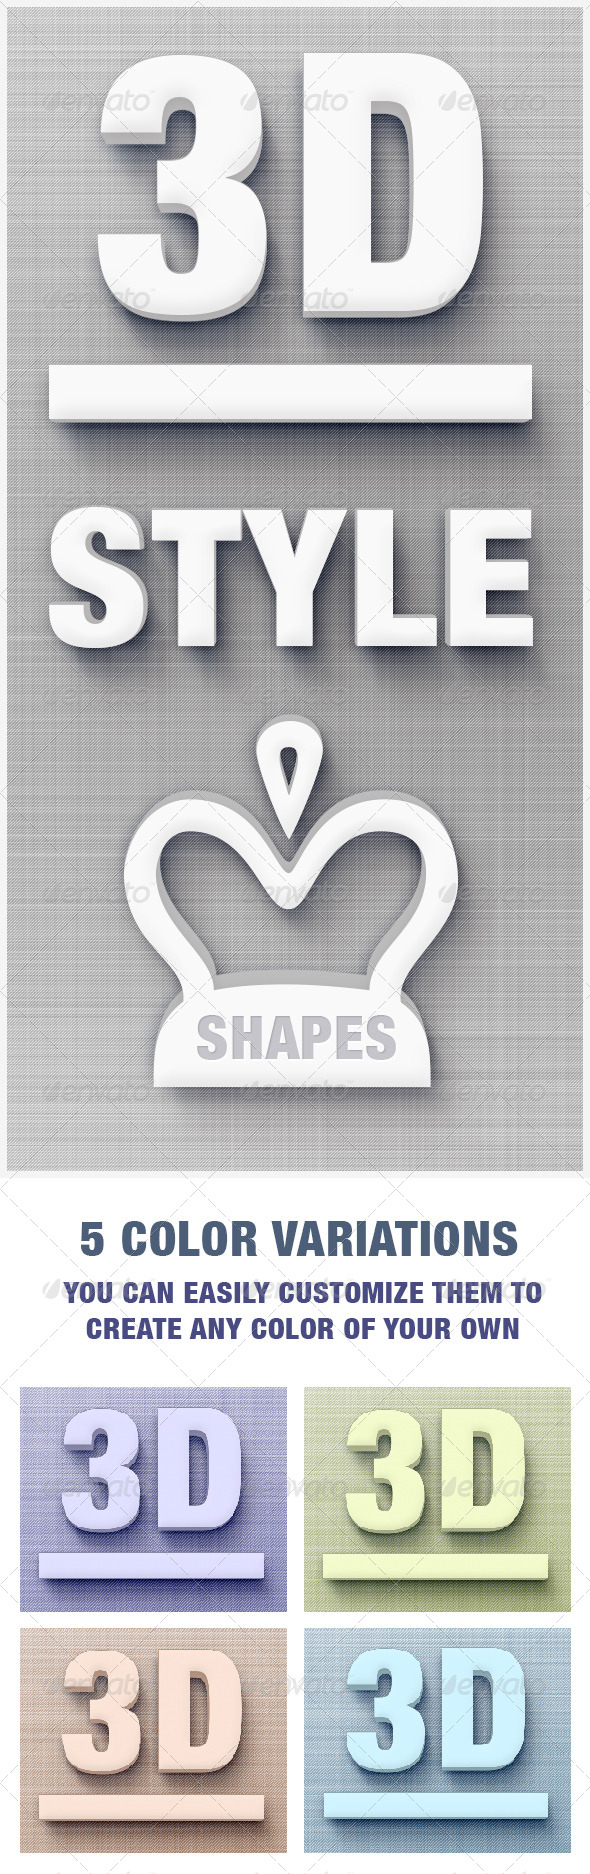 GraphicRiver 3D Style 3D Text Creator 5770723